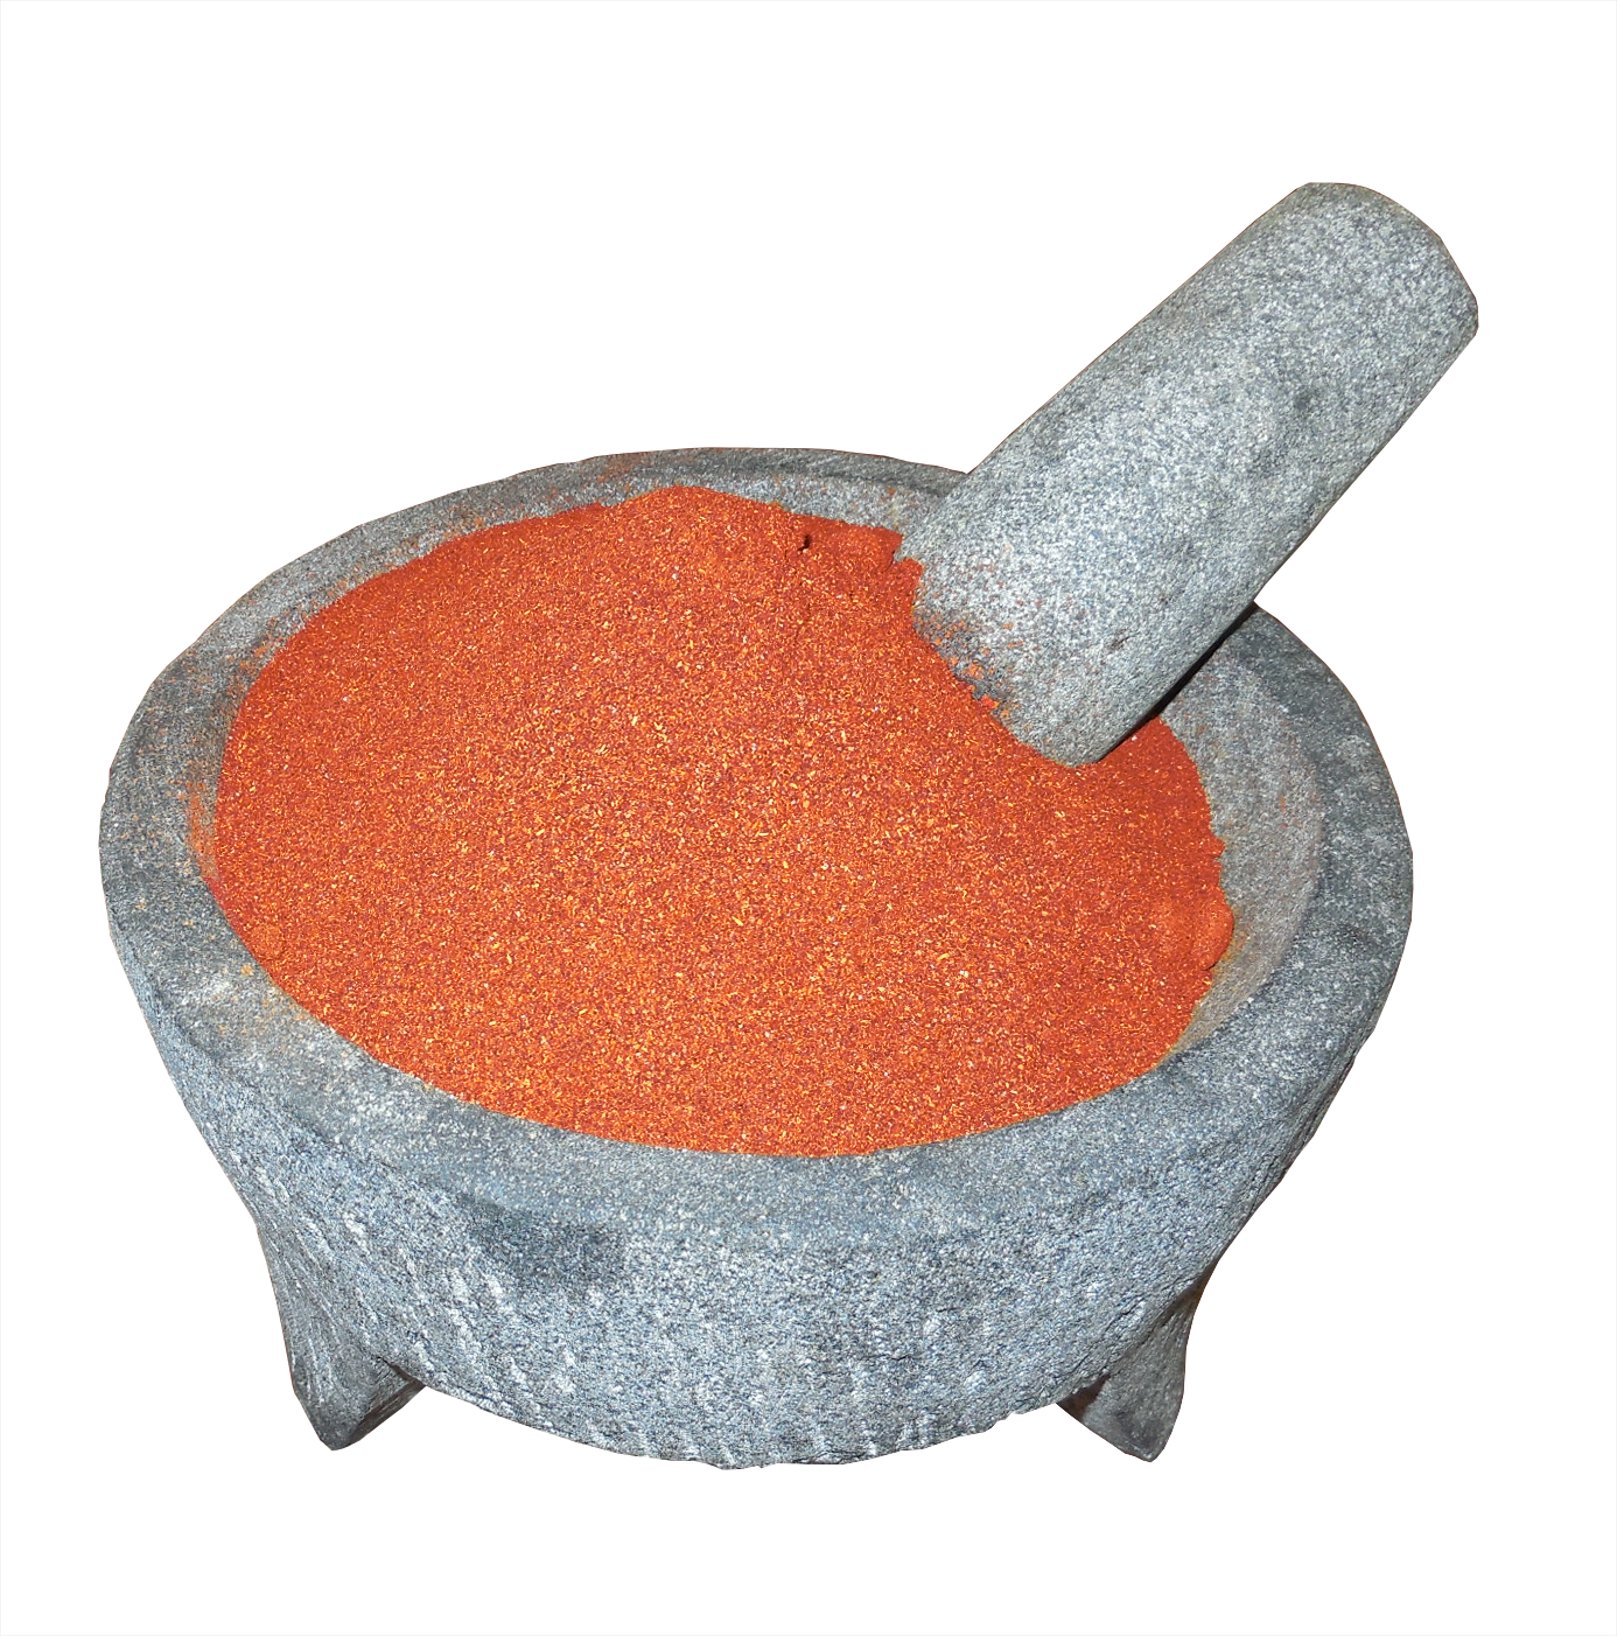 Arbol Chile Powder El Molcajete Brand for Sauces, Salsa, Pasta, Chili, Meat, Pizza, Potatoes, Vegetables, Soups, Stews, Chicken and BBQ (18 oz)